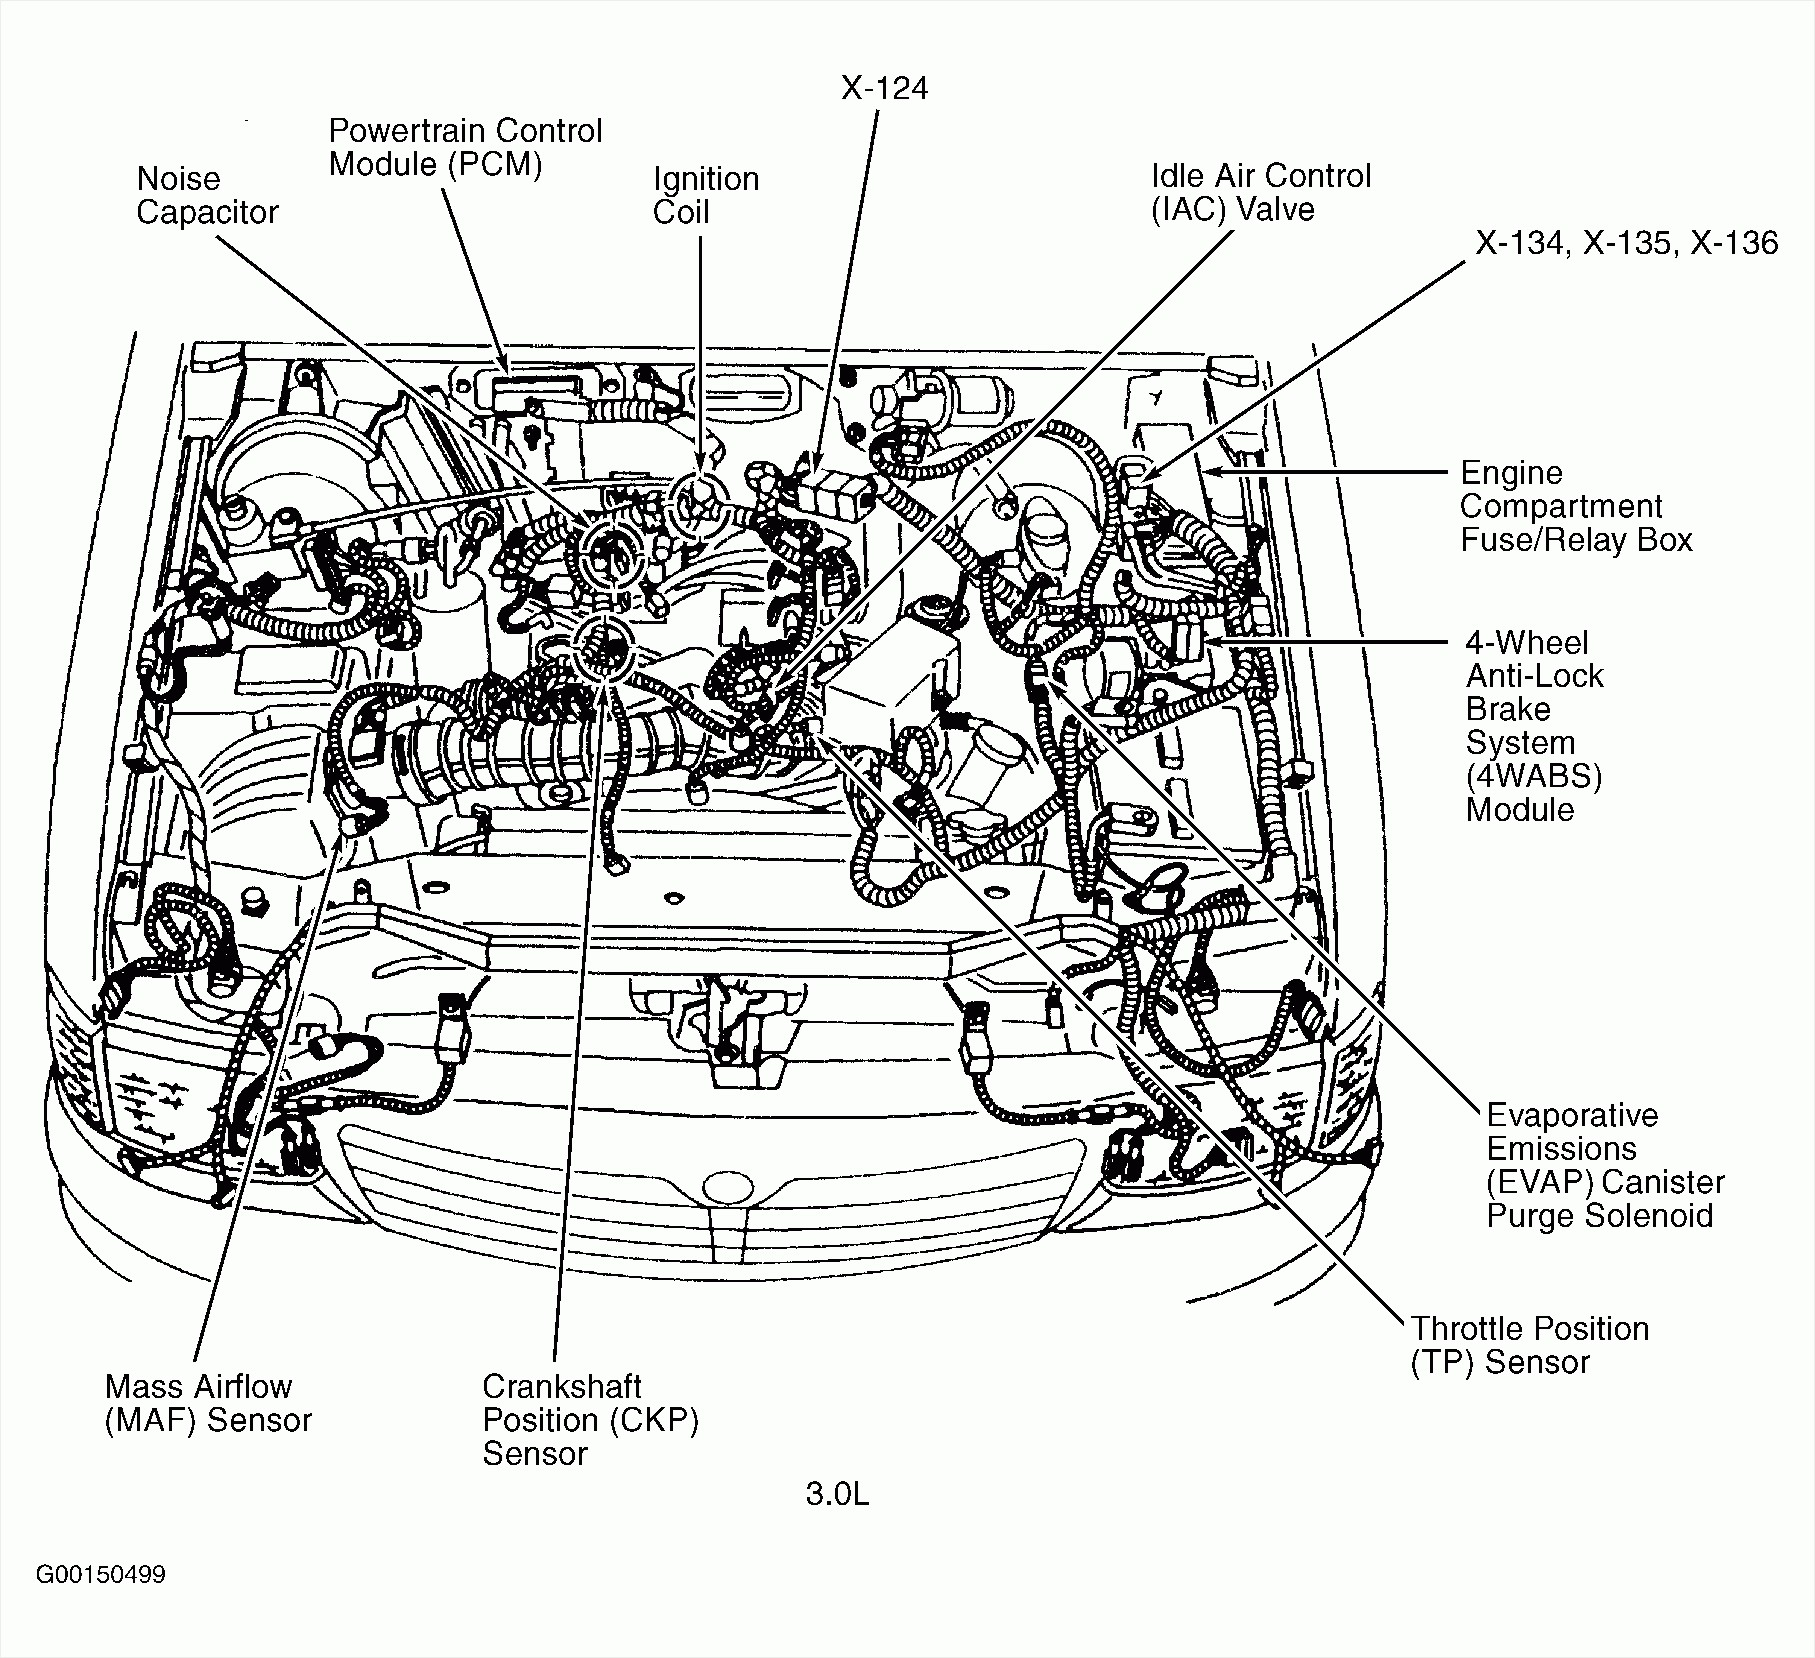 hight resolution of 2003 suzuki grand vitara engine diagram wiring diagram forward 2003 suzuki grand vitara engine diagram